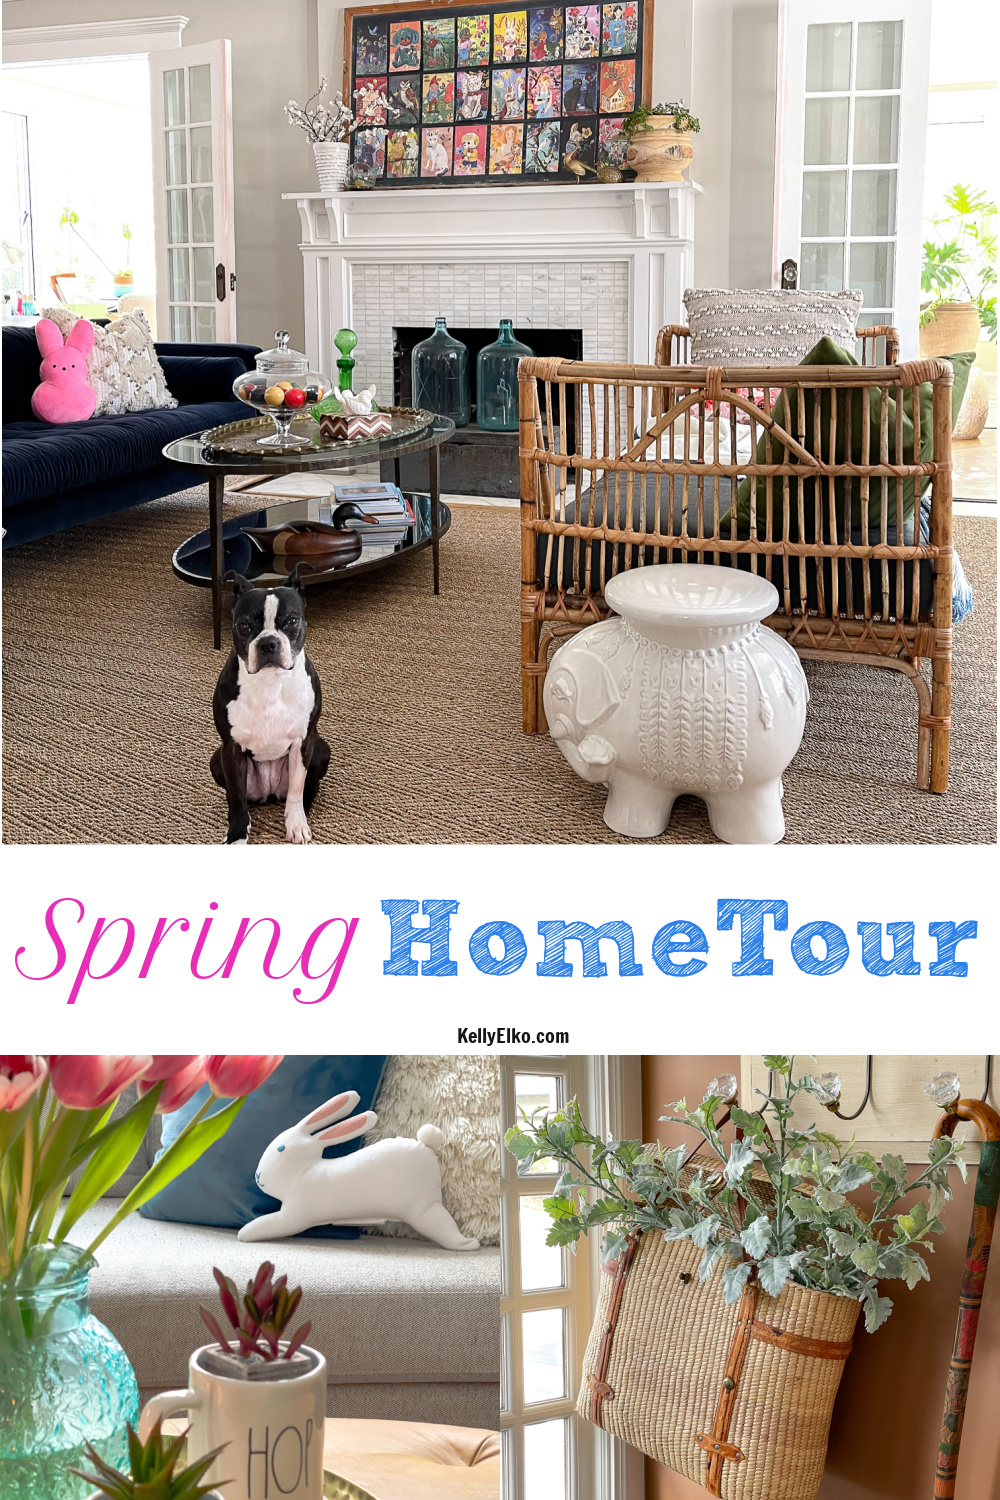 Eclectic and colorful spring home tour kellyelko.com